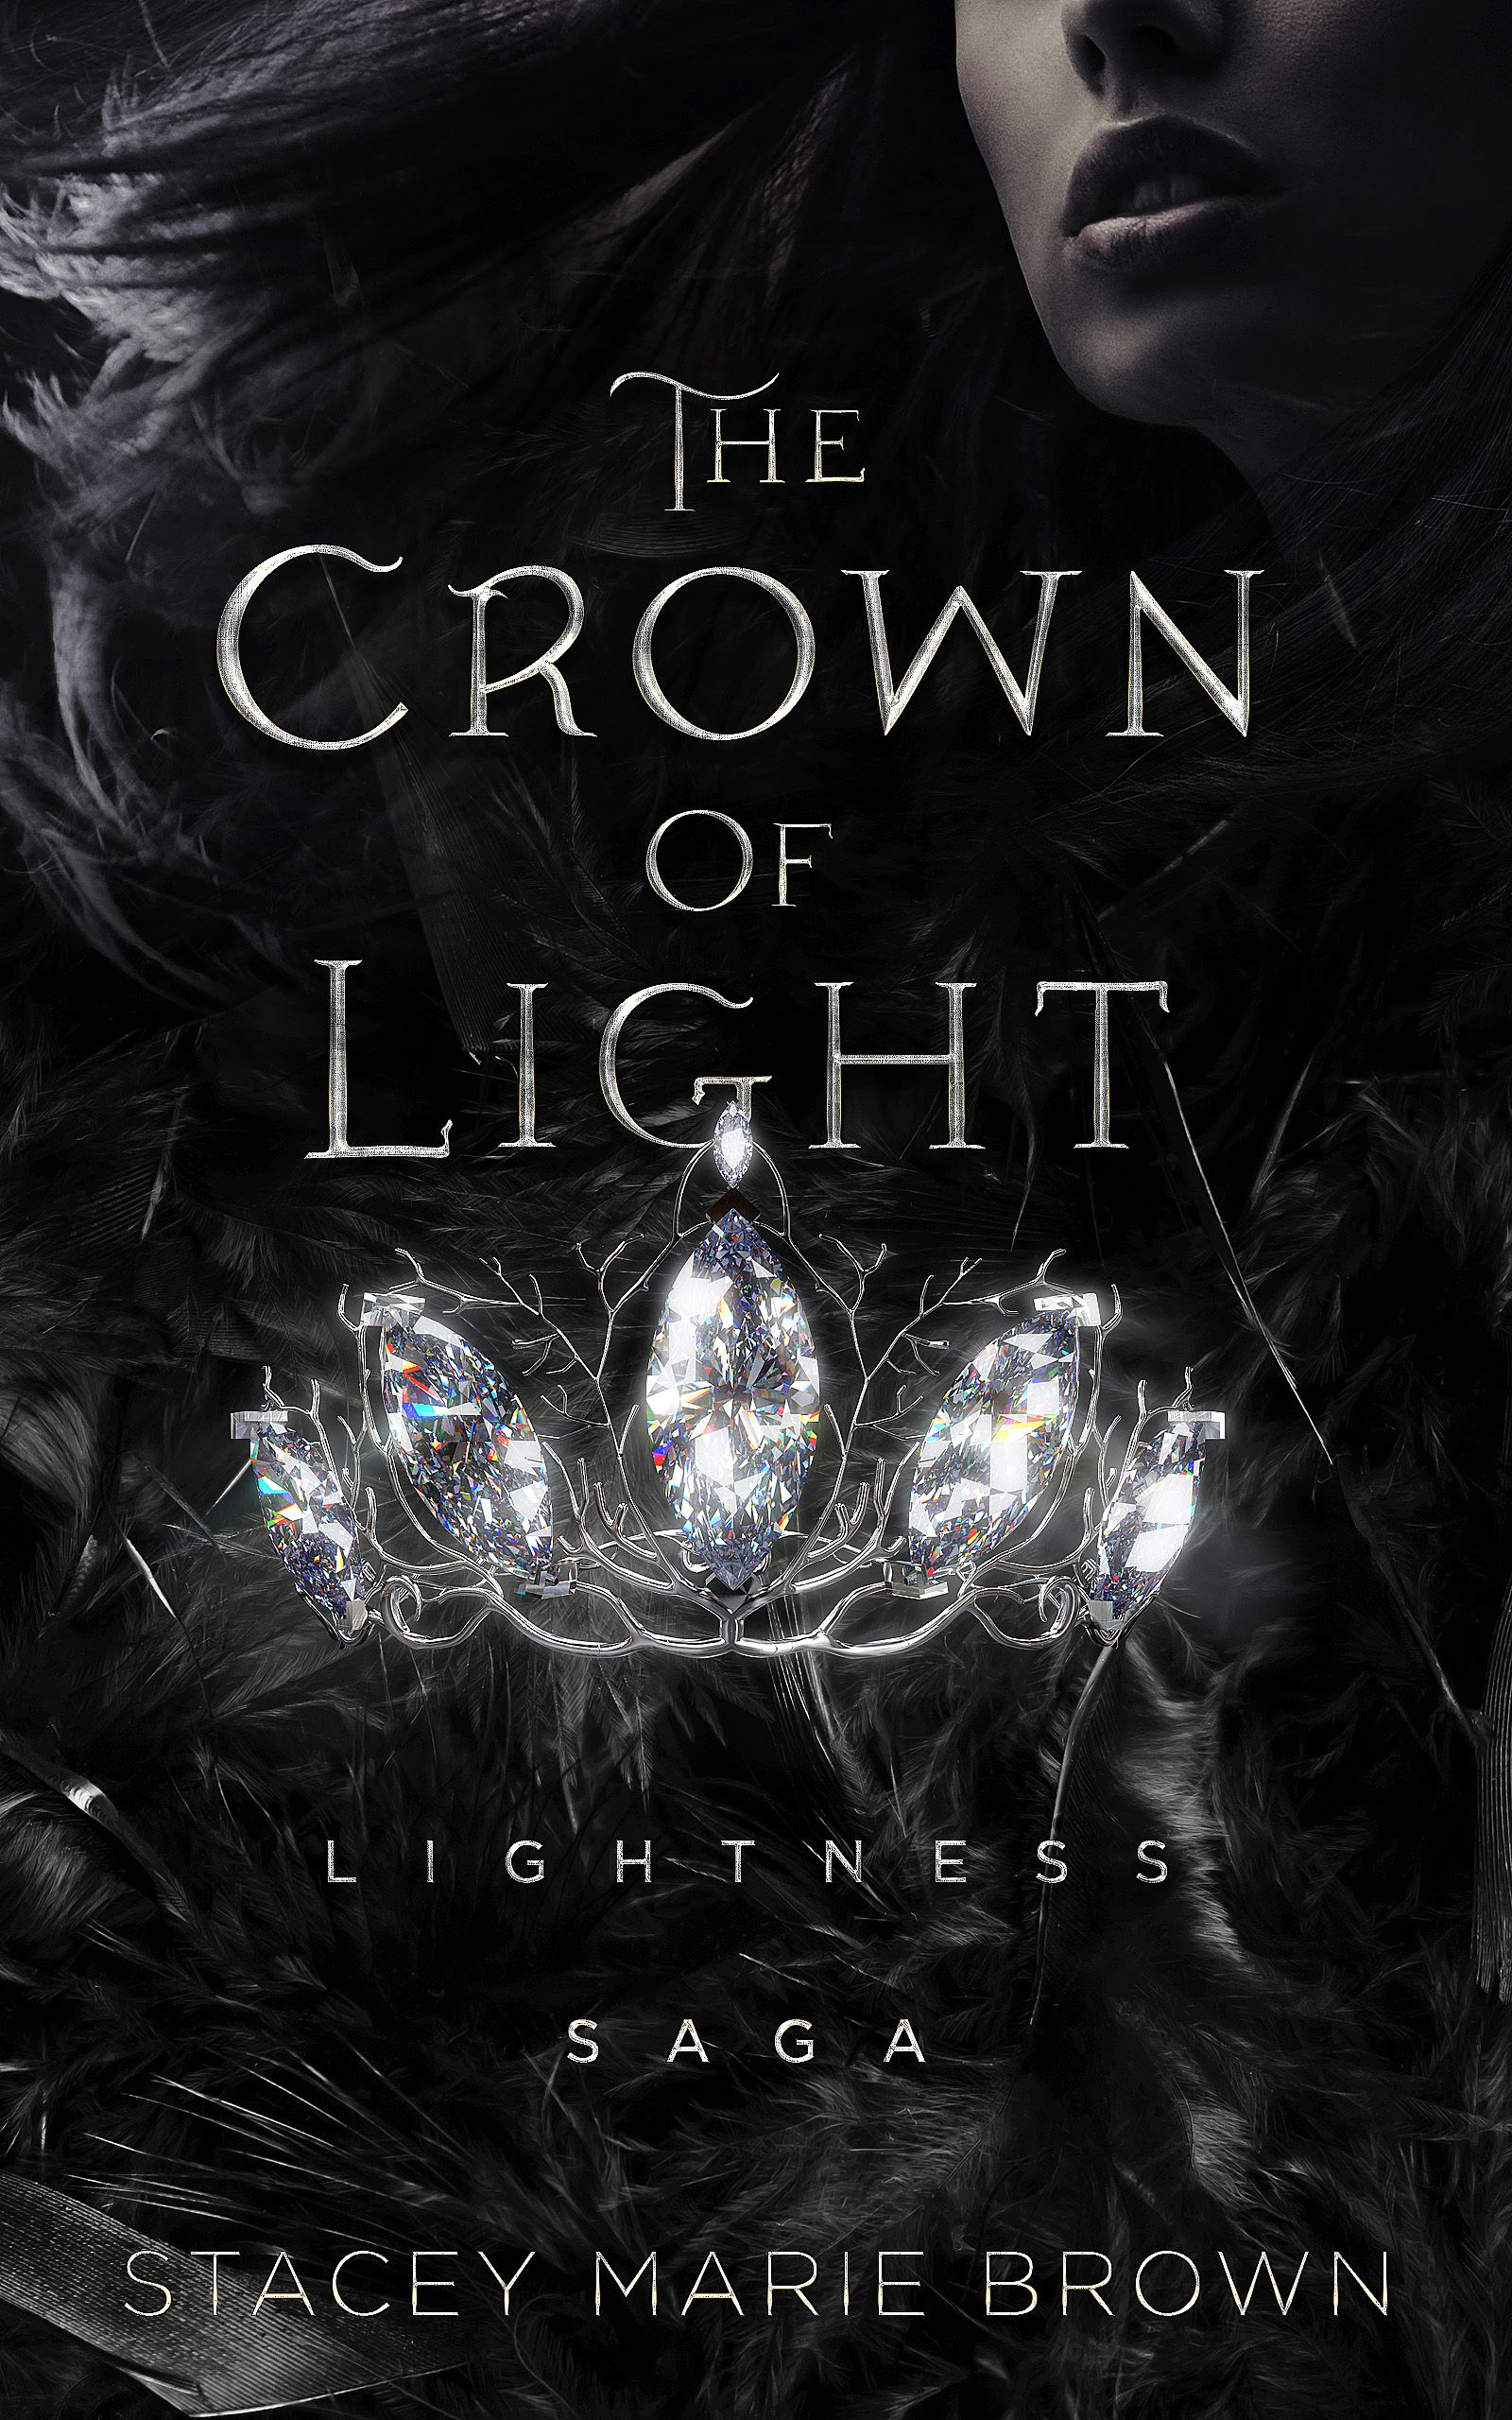 Book Cover Design For The Crown Of Light If You Would Like To Commission Us For Your Book Cover Please Fantasy Books To Read Fantasy Books Book Cover Design